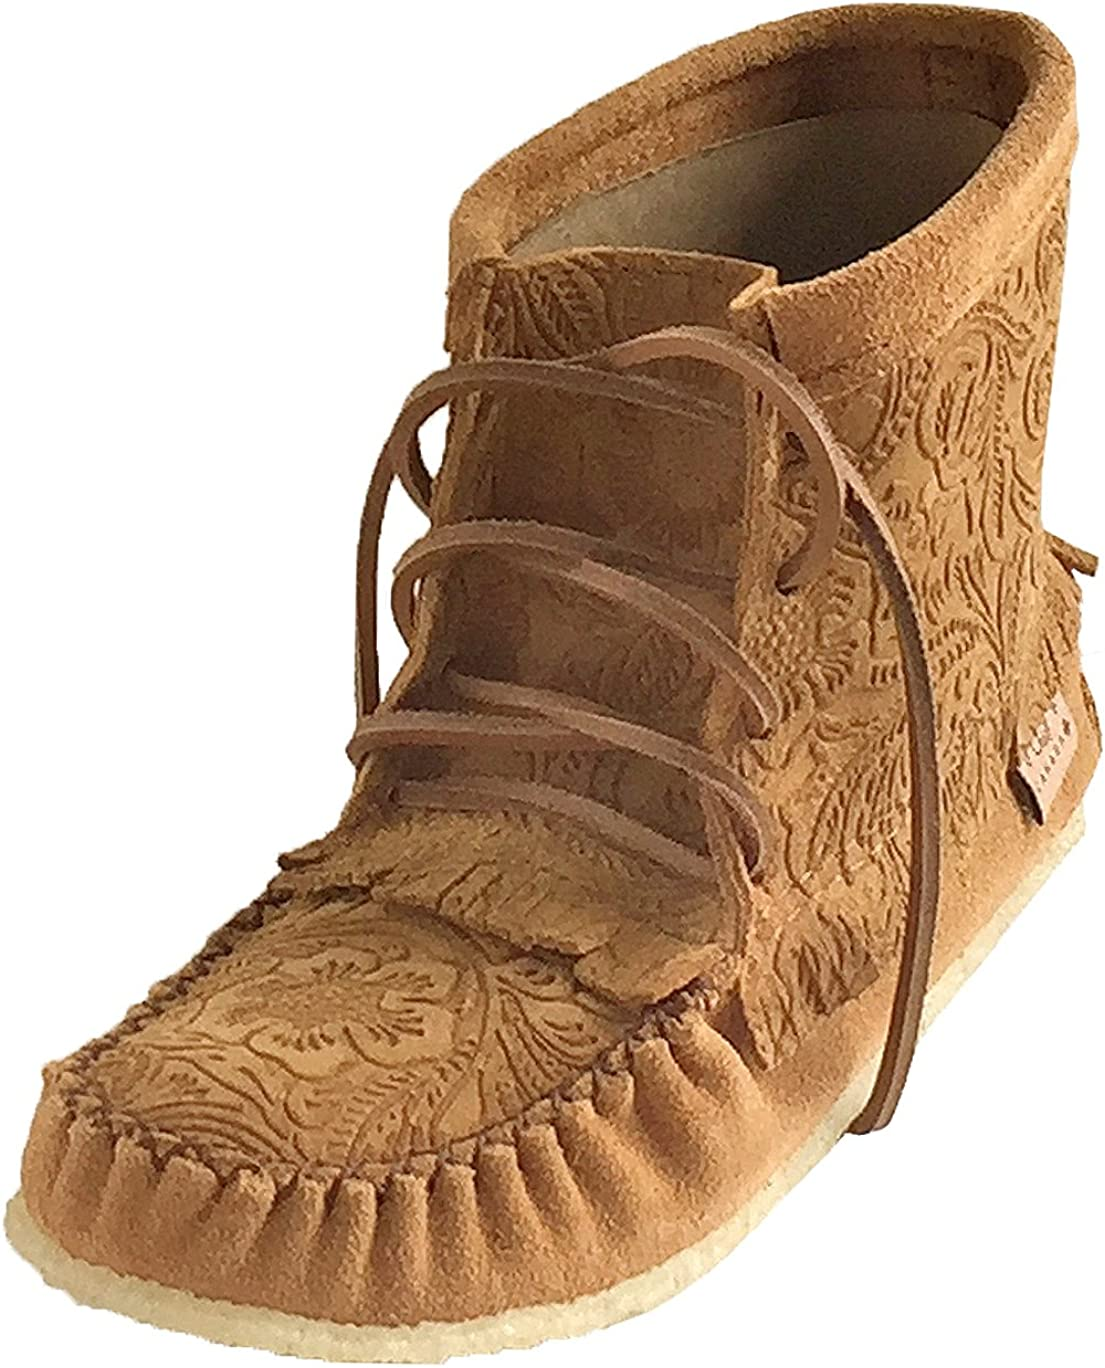 Laurentian Chief Women's Imperiale Floral Embossed Moccasin Shoes Lace Up Ankle Boots